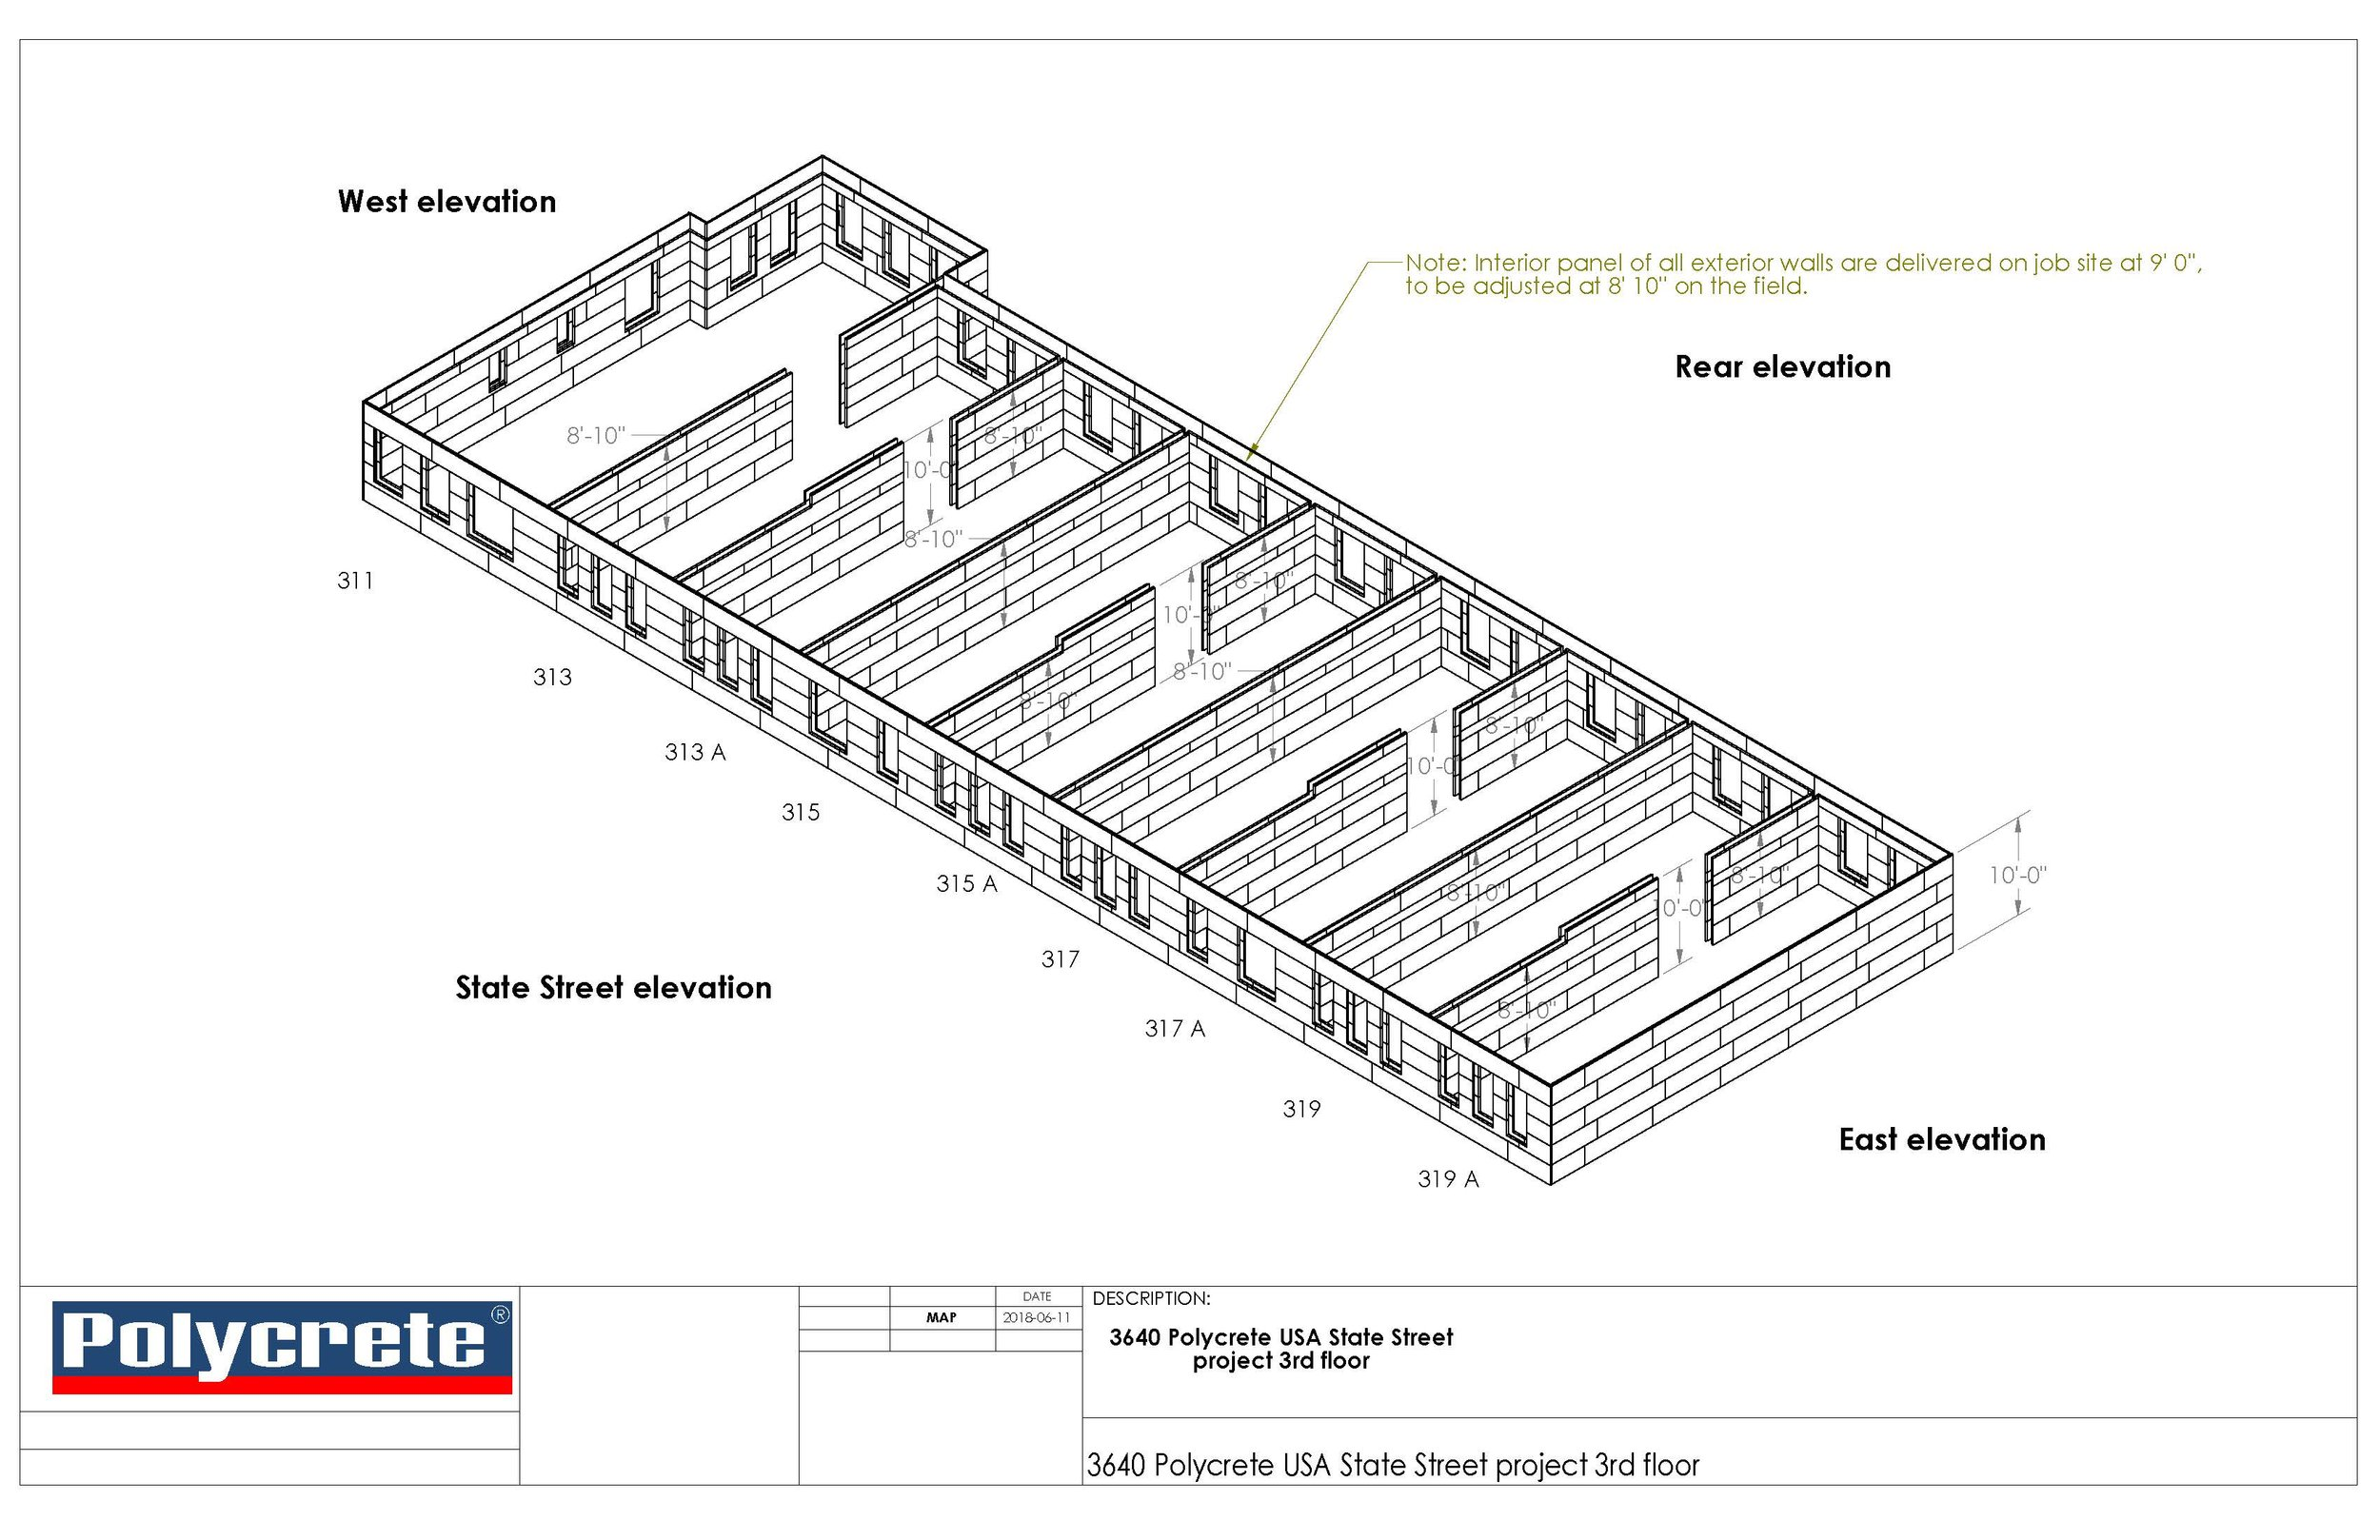 Pages from 3640 Polycrete USA State Street project 3rd floor plans d'installation-2.jpg